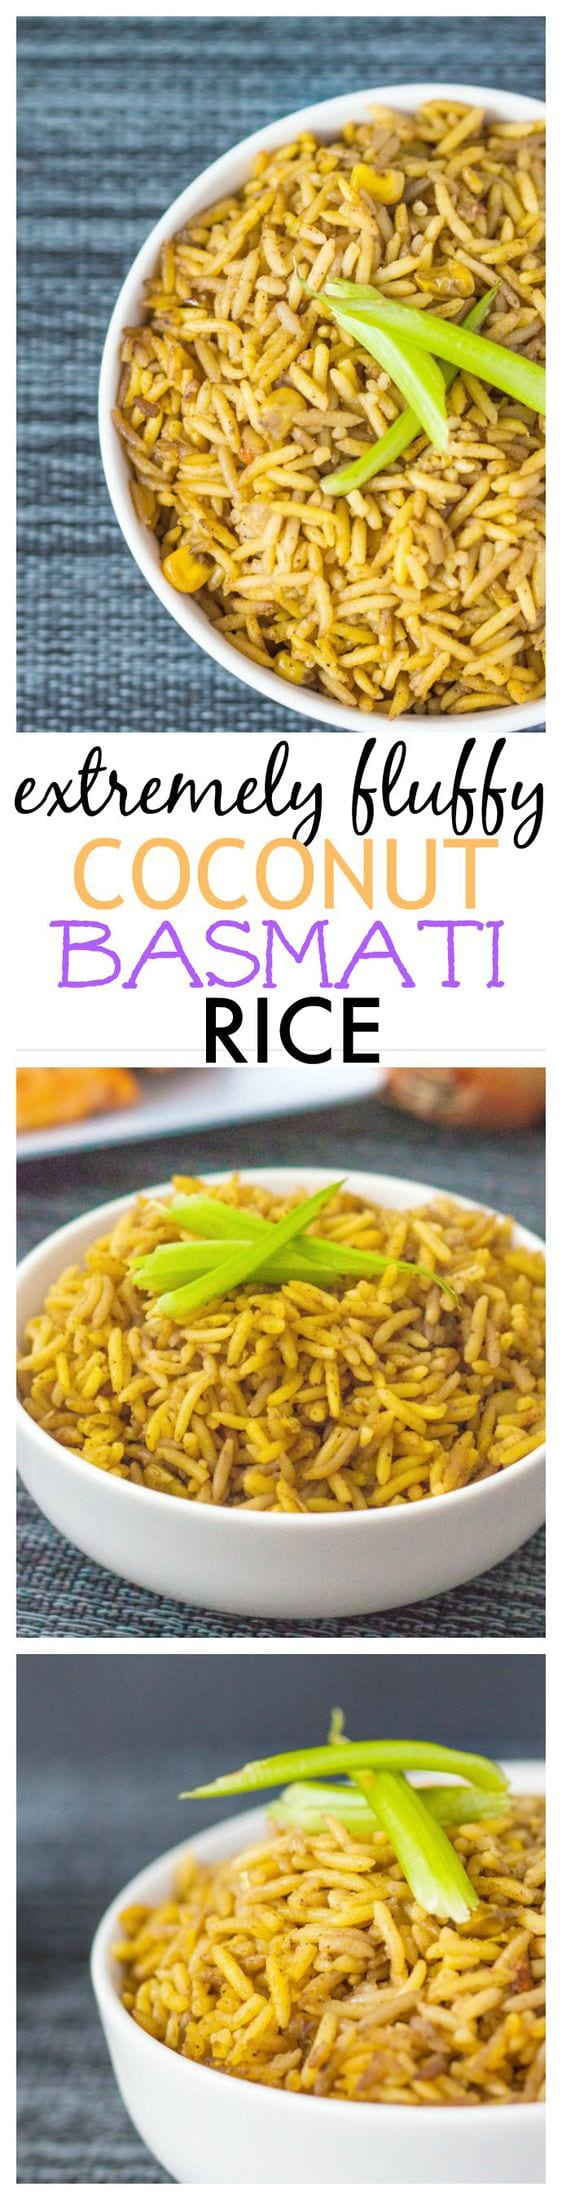 Fluffy Coconut Basmati Rice- You'll never go back to standard rice after this method, which is perfect with any dish! {vegan + gluten free}